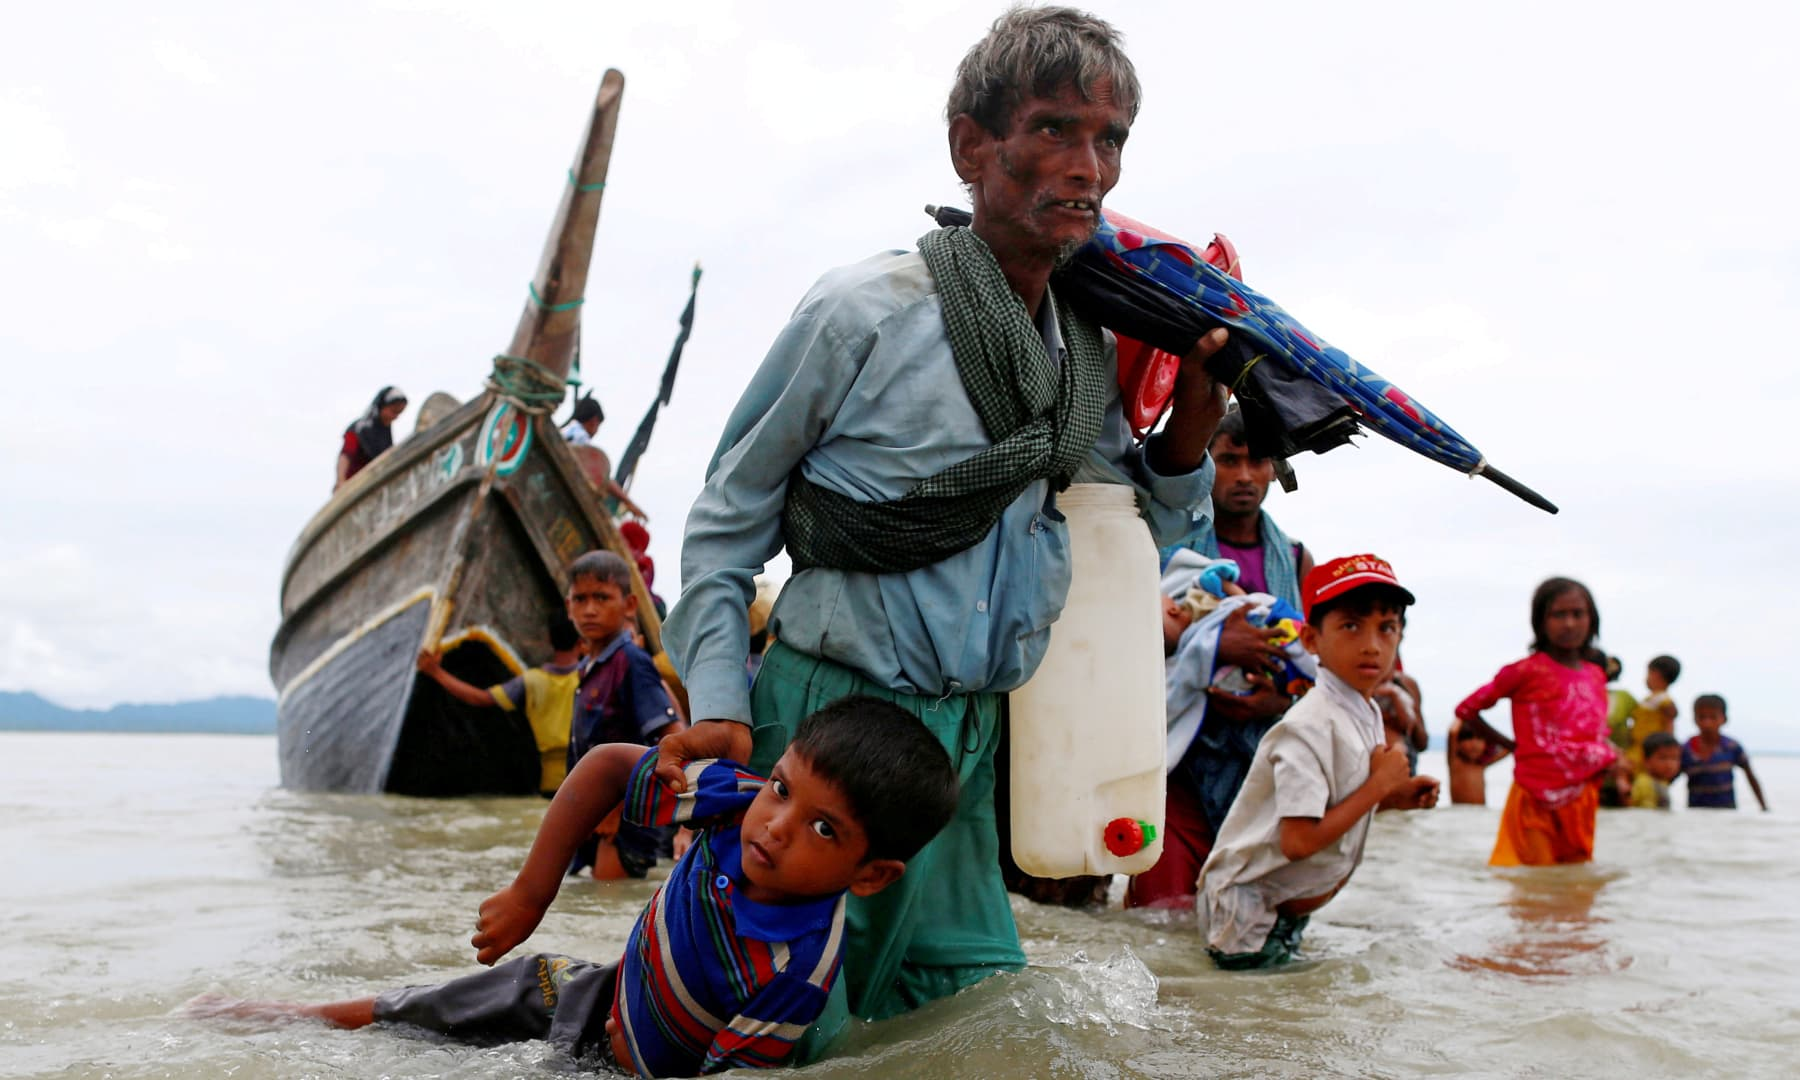 A Rohingya refugee man pulls a child as they walk to the shore after crossing the Bangladesh-Myanmar border by boat through the Bay of Bengal in Shah Porir Dwip, Bangladesh, September 10, 2017. — Reuters/Danish Siddiqui